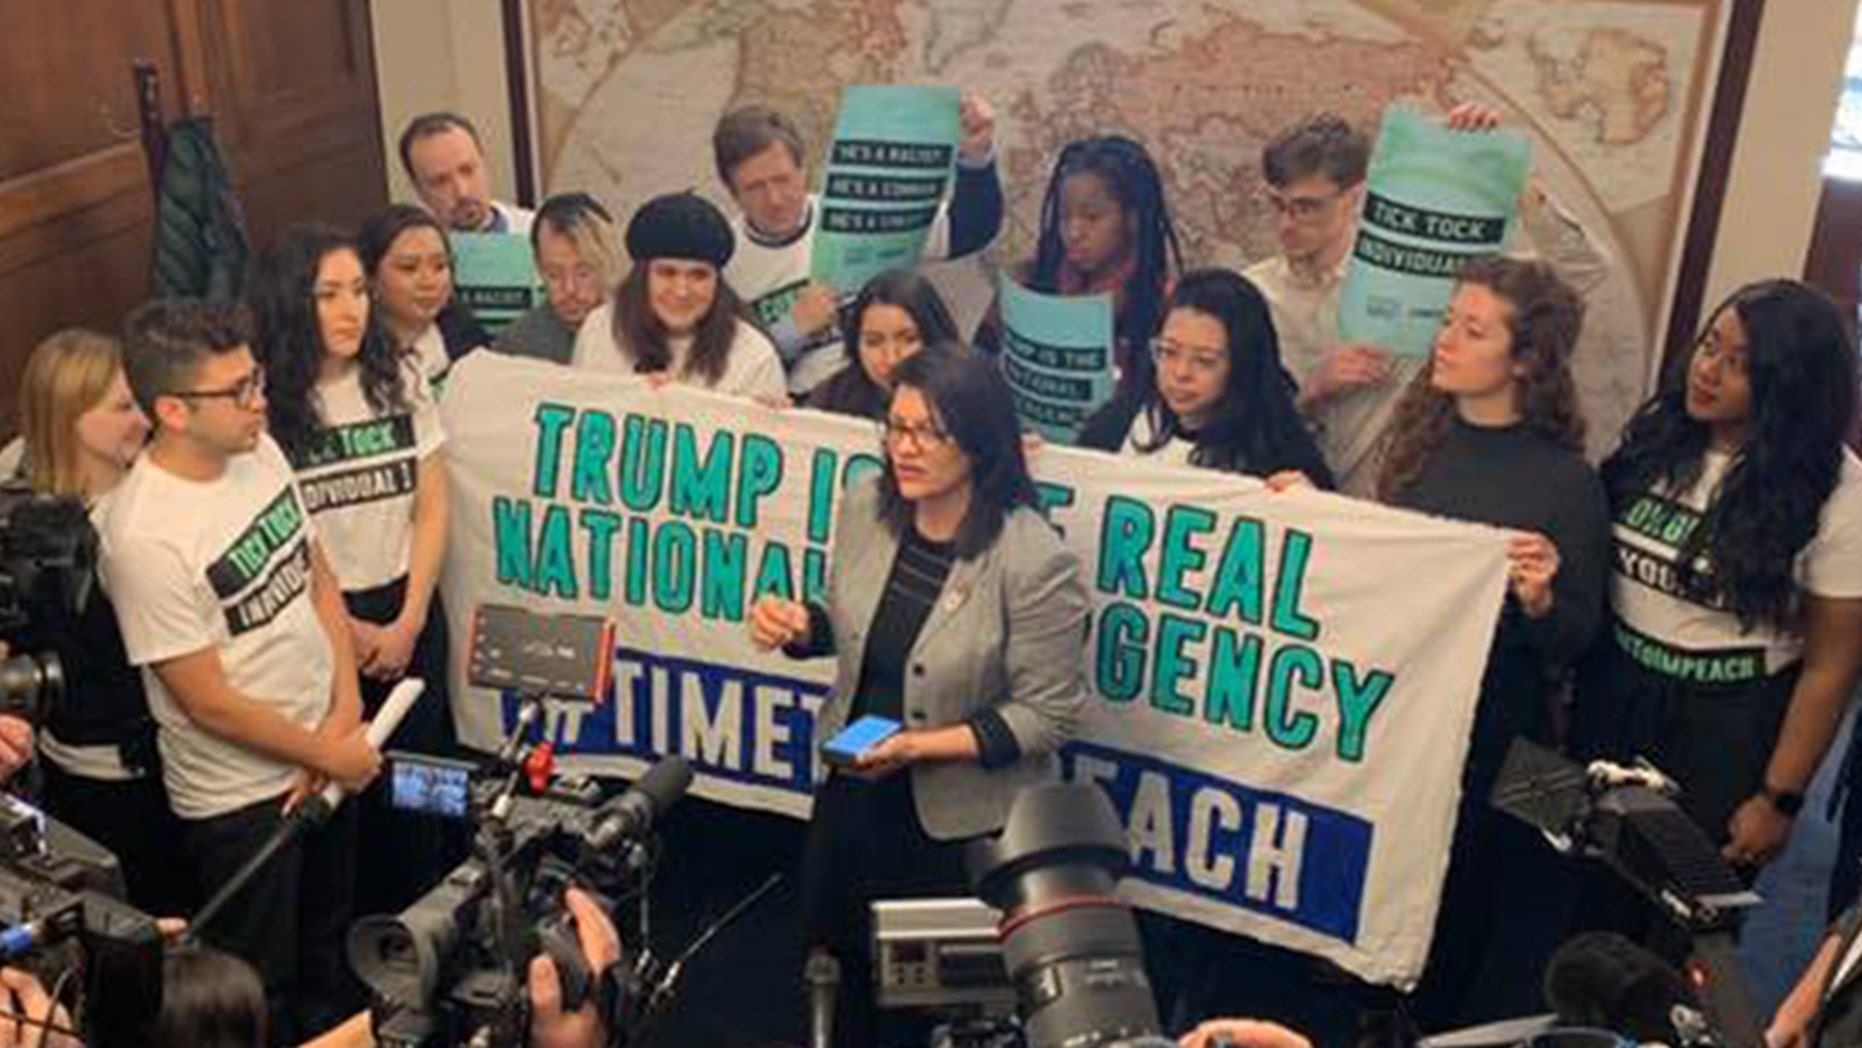 Rep. Rashida Tlaib joined protesters with CREDO Action and By the People, a new advocacy group pushing for the impeachment of President Trump. Together they urged members of Congress to begin impeachment proceedings.